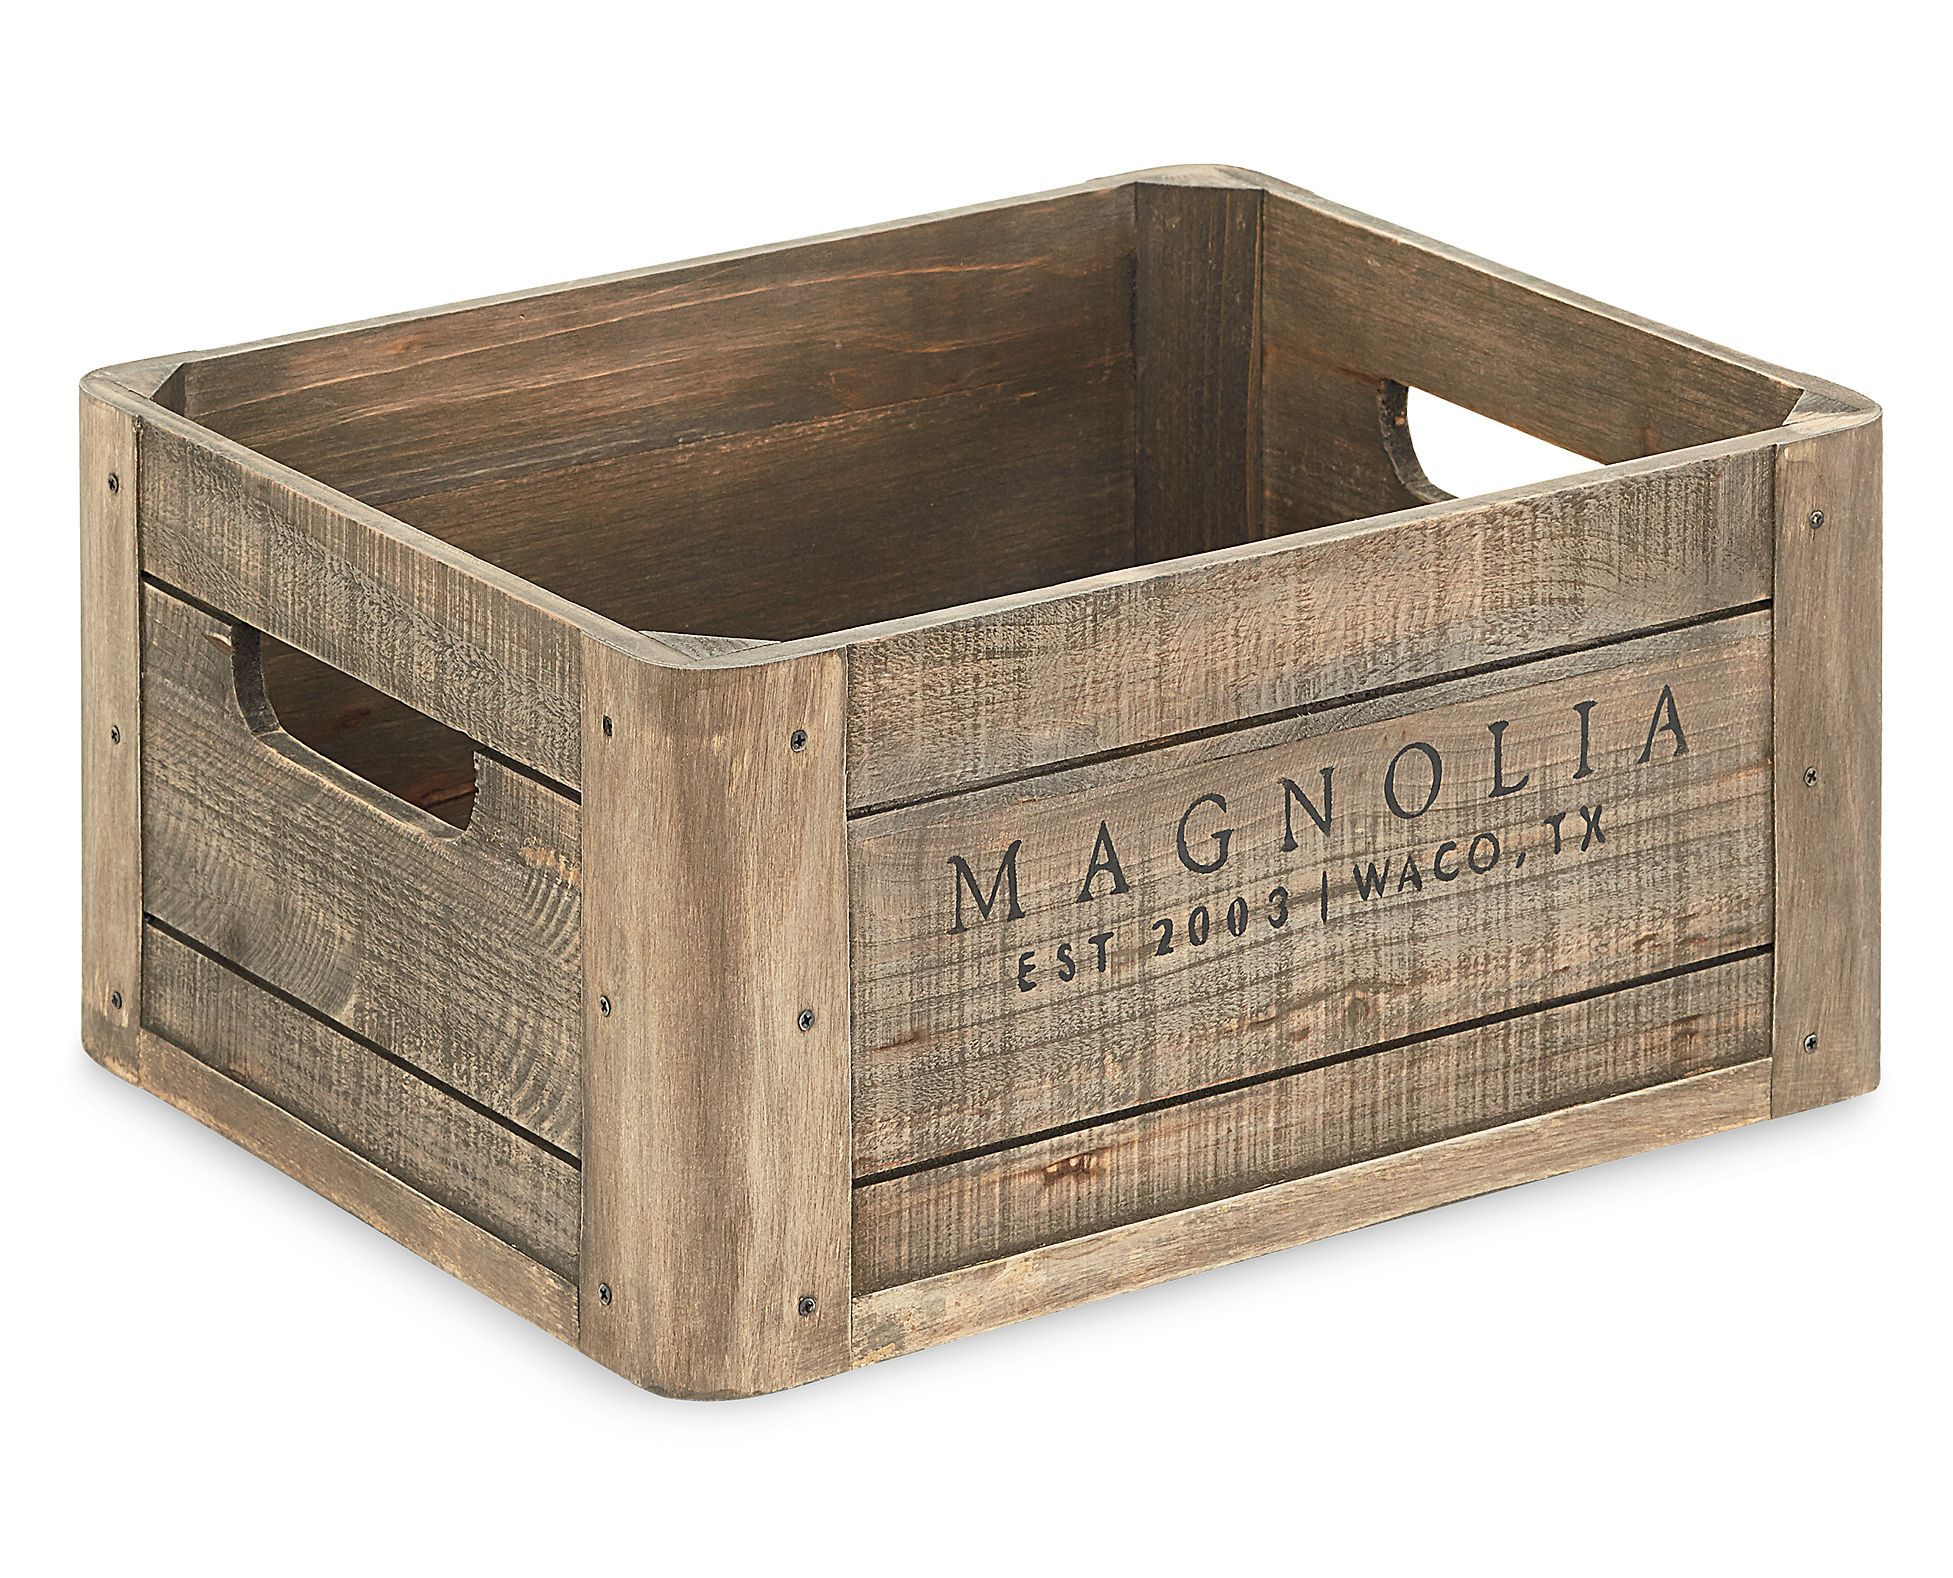 Magnolia Home Wood Crate Made Is Made From Weathered Pine With Cutout Slot Handles On Two Sides With An Authentic Repurpose Crates Wood Crates Crate Furniture